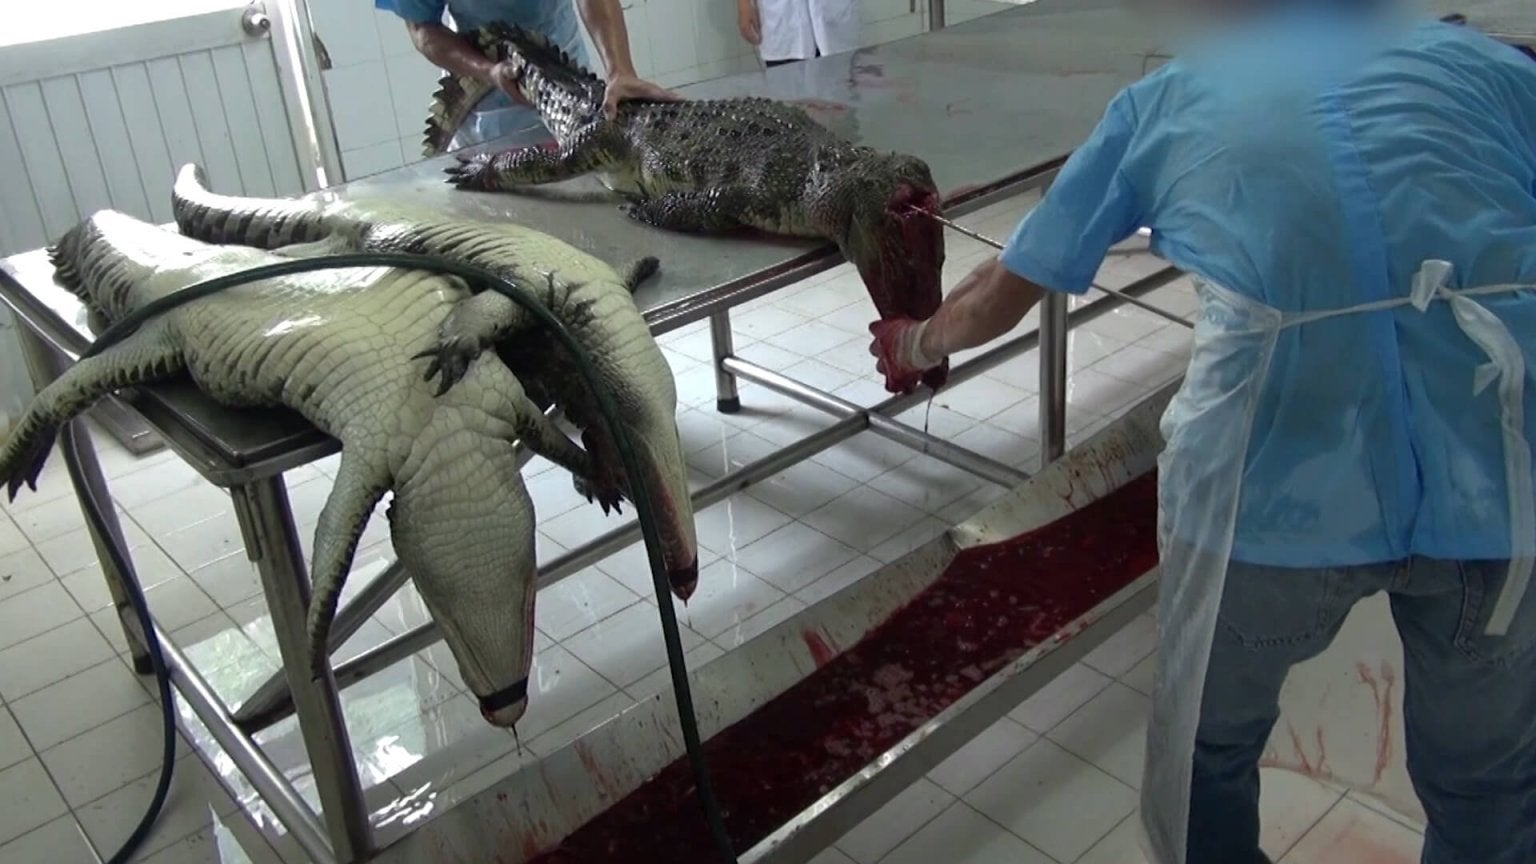 Footage Shows Crocodiles Skinned For Louis Vuitton Leather Bags While Still Alive